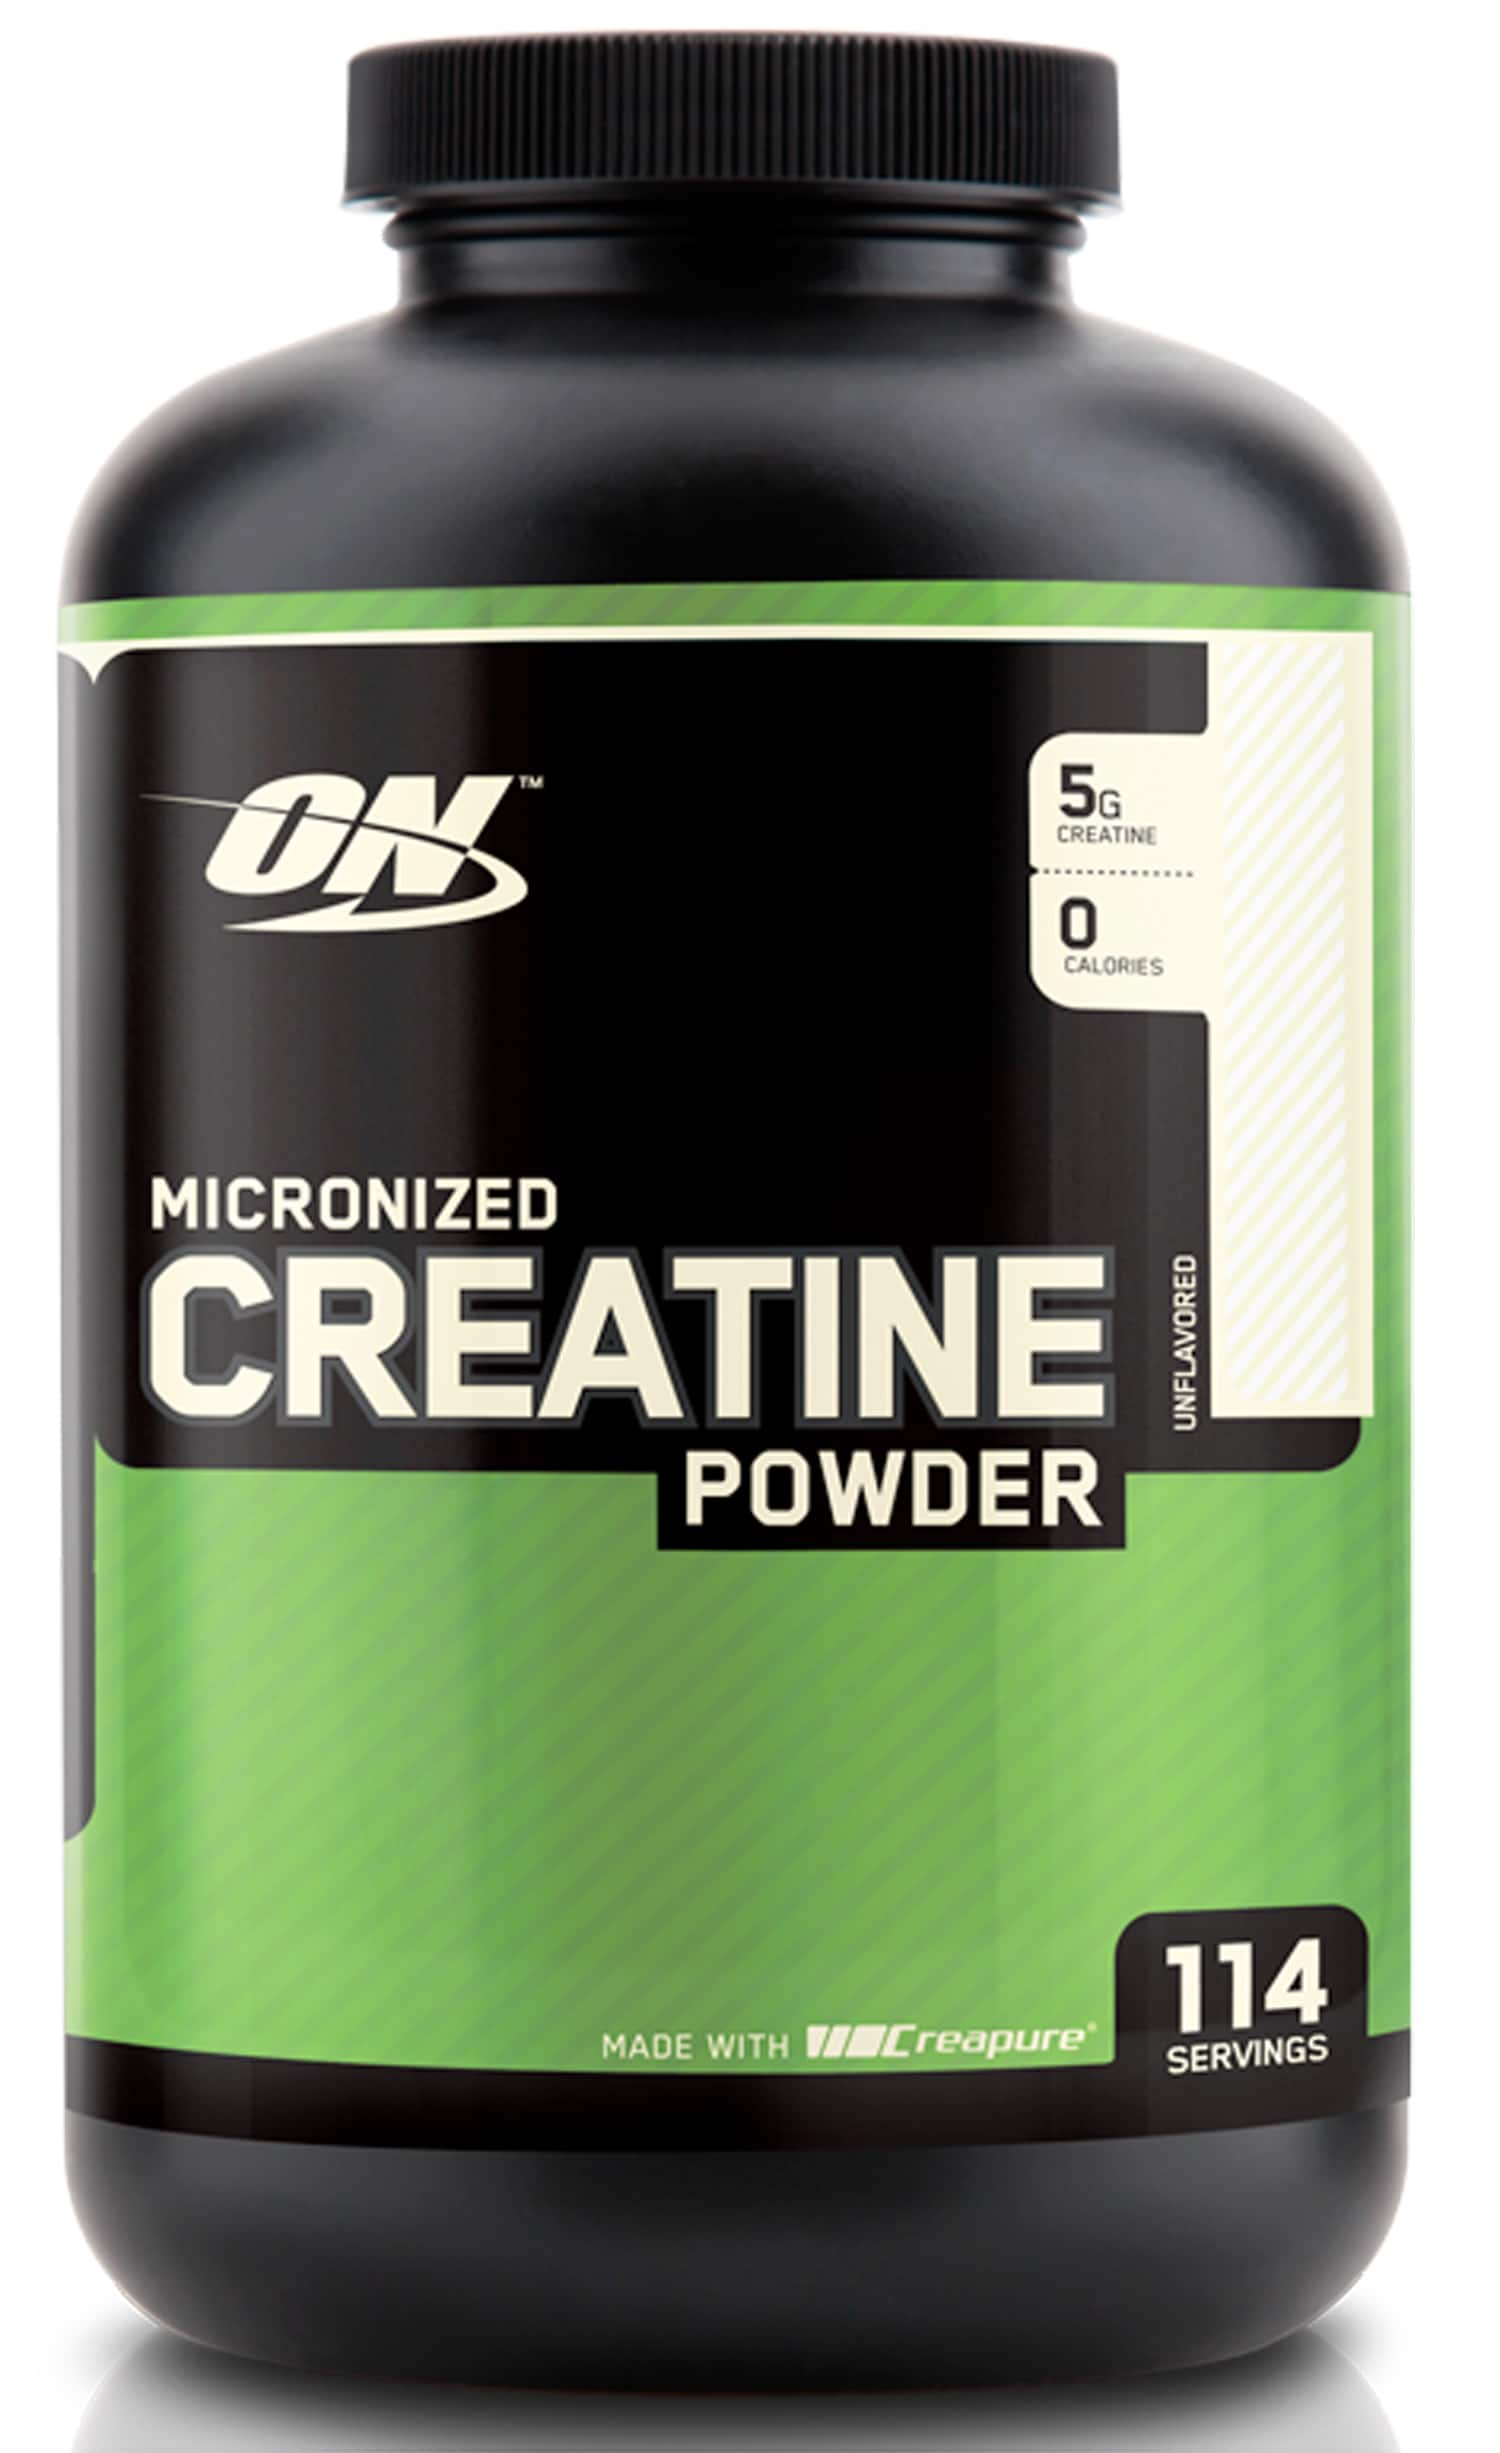 Optimum Nutrition Micronized Creatine 120 Servings for 10.52 w/ s&s $10.52